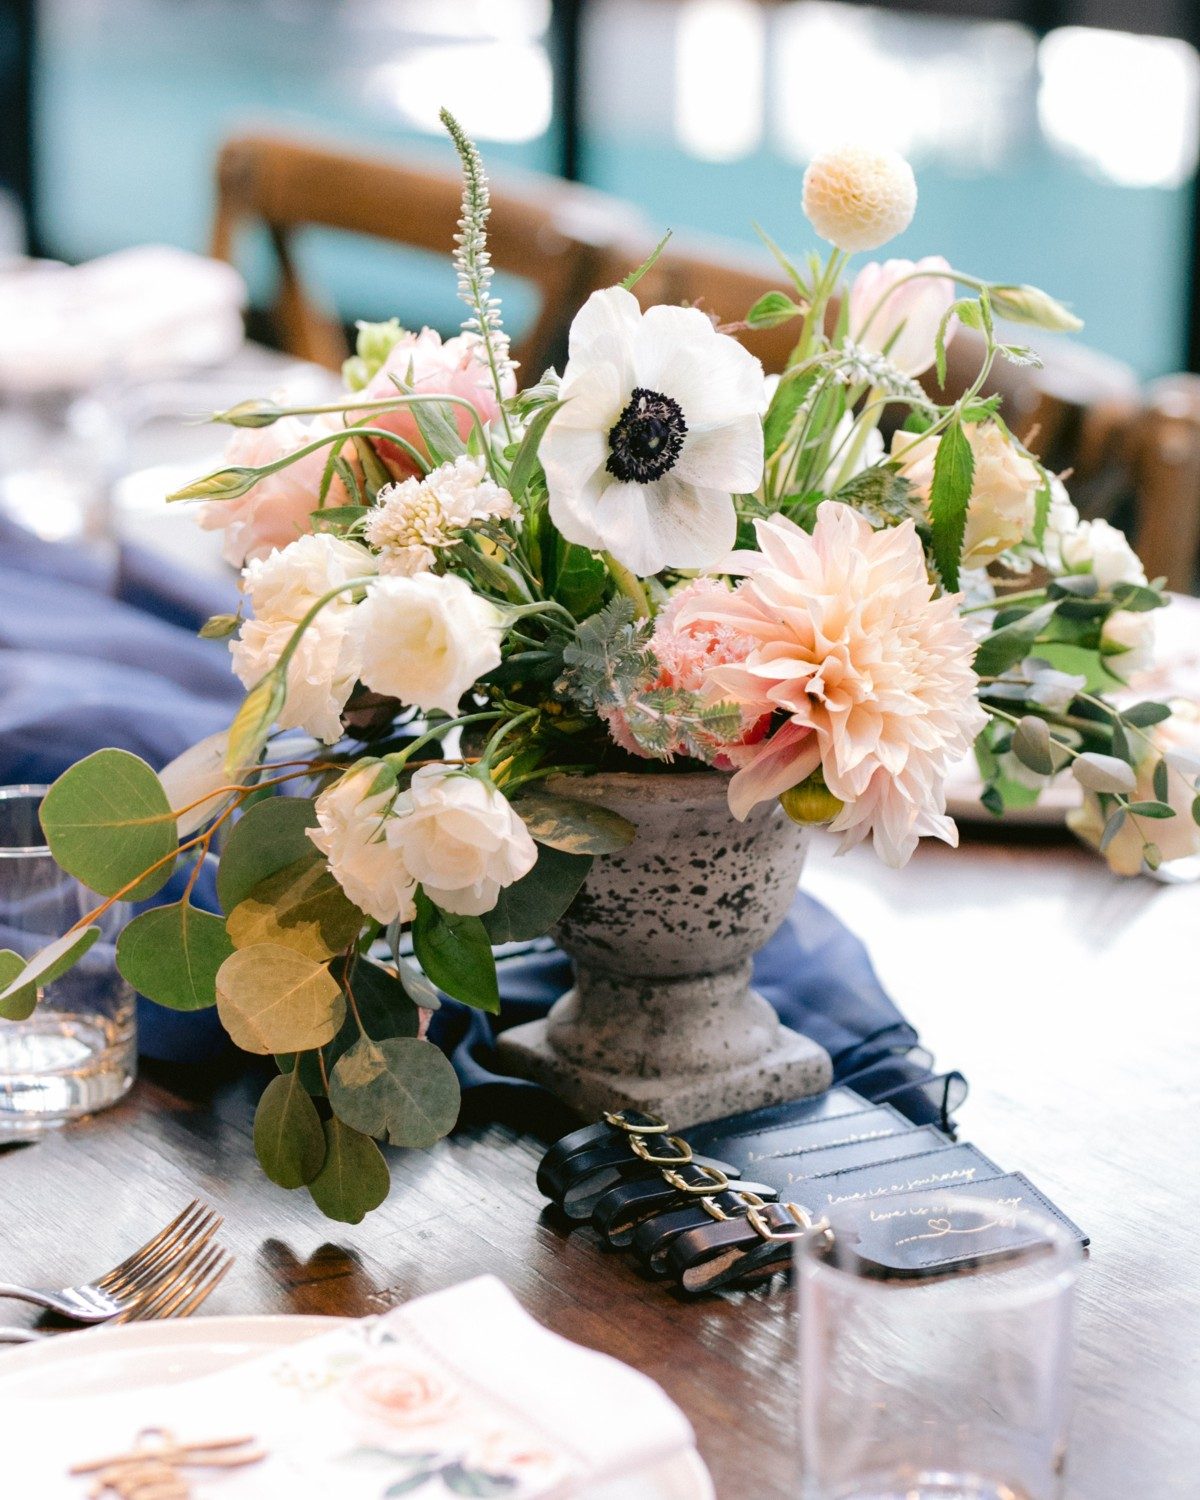 Inspirations by Gina - Lake Tahoe wedding florist - centerpiece with antique container